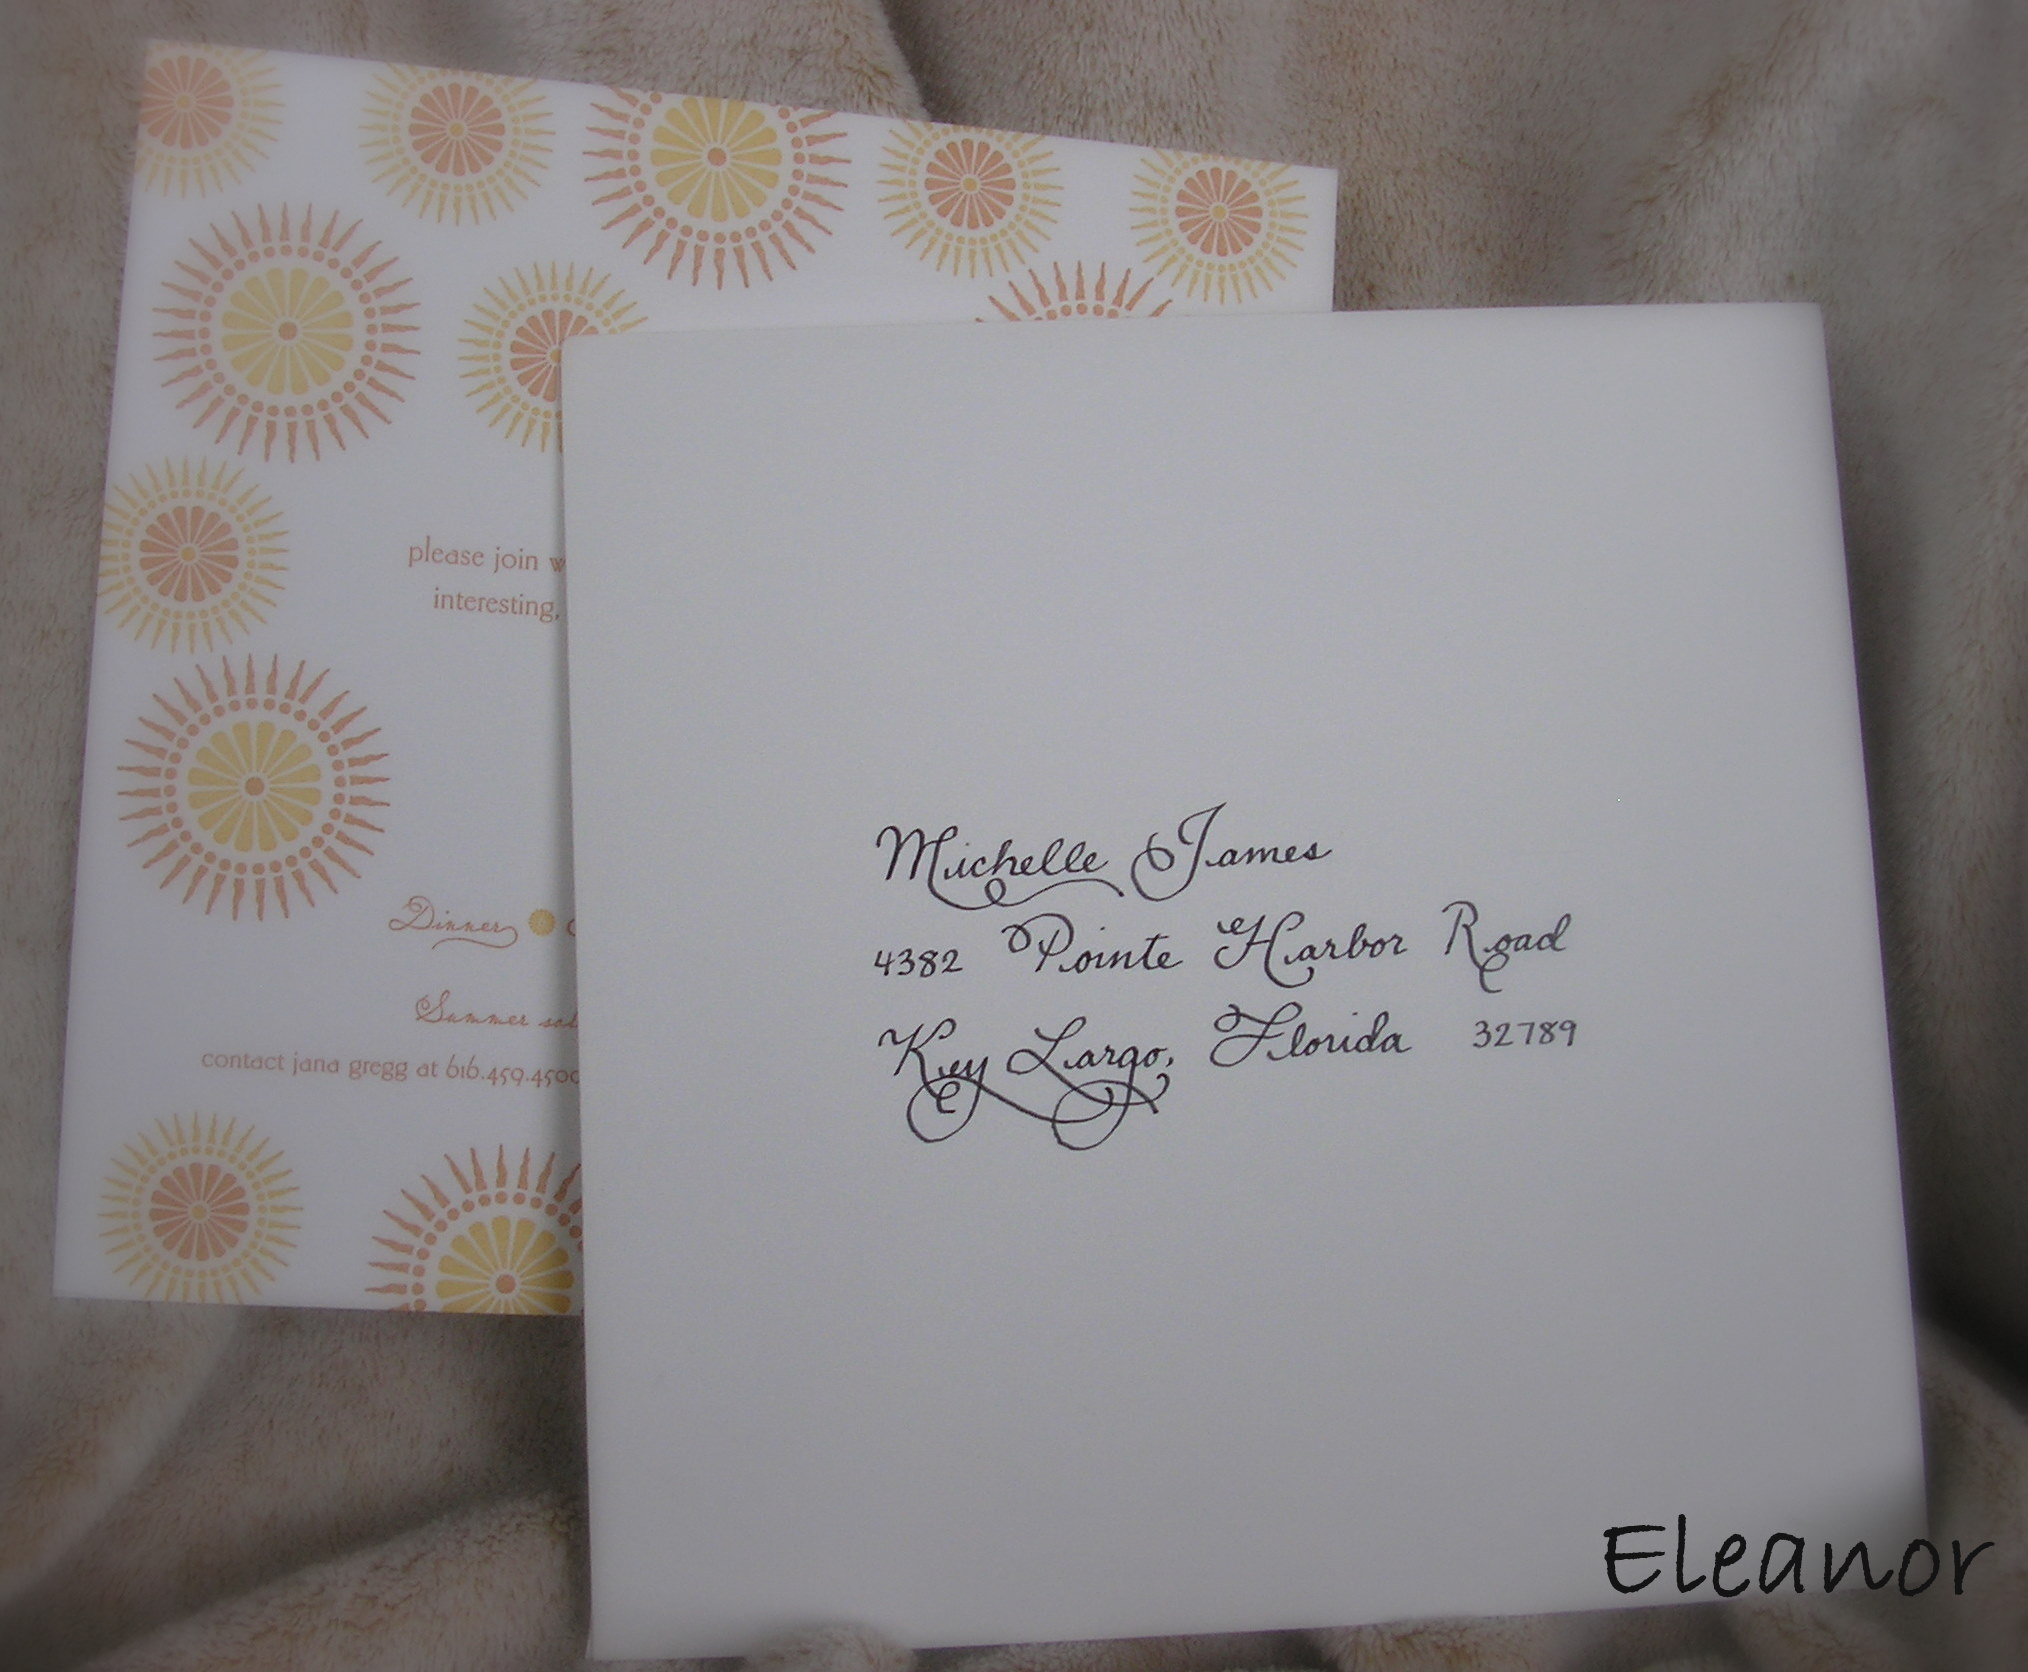 Calligraphy, Stationery, invitation, Invitations, Stationary, Calligrapher, Designs by robyn love